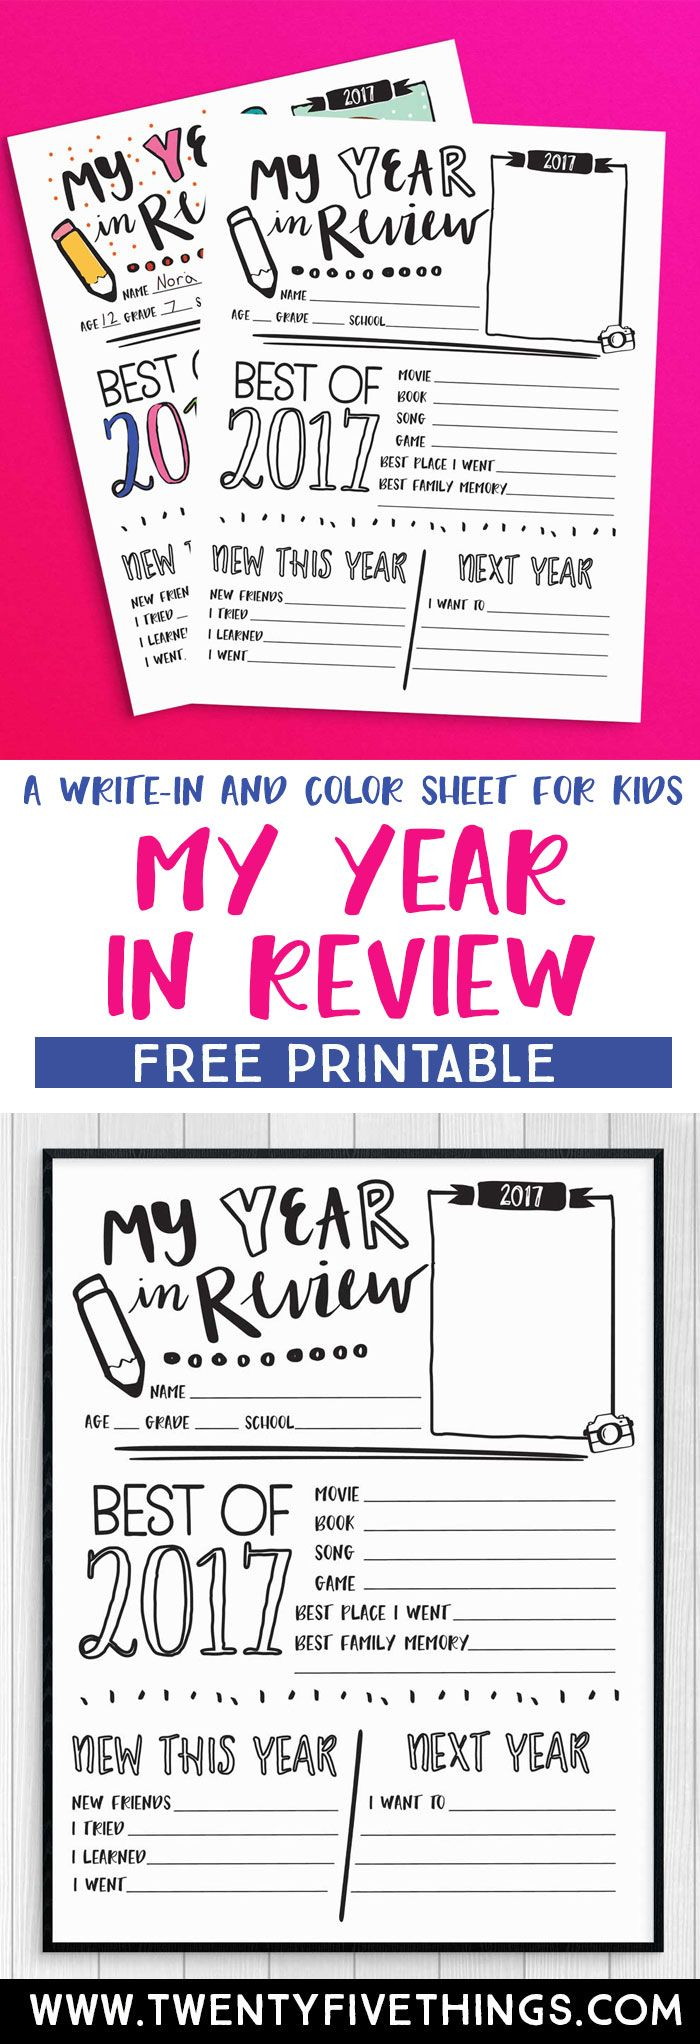 Print this Year in Review printable and have fun looking back on the year with the kids. This free printable is new for 2017 and is a great kids activity for New Year's Eve. #FreePrintable #NewYearsEve #KidsActivity #KidsKeepsake